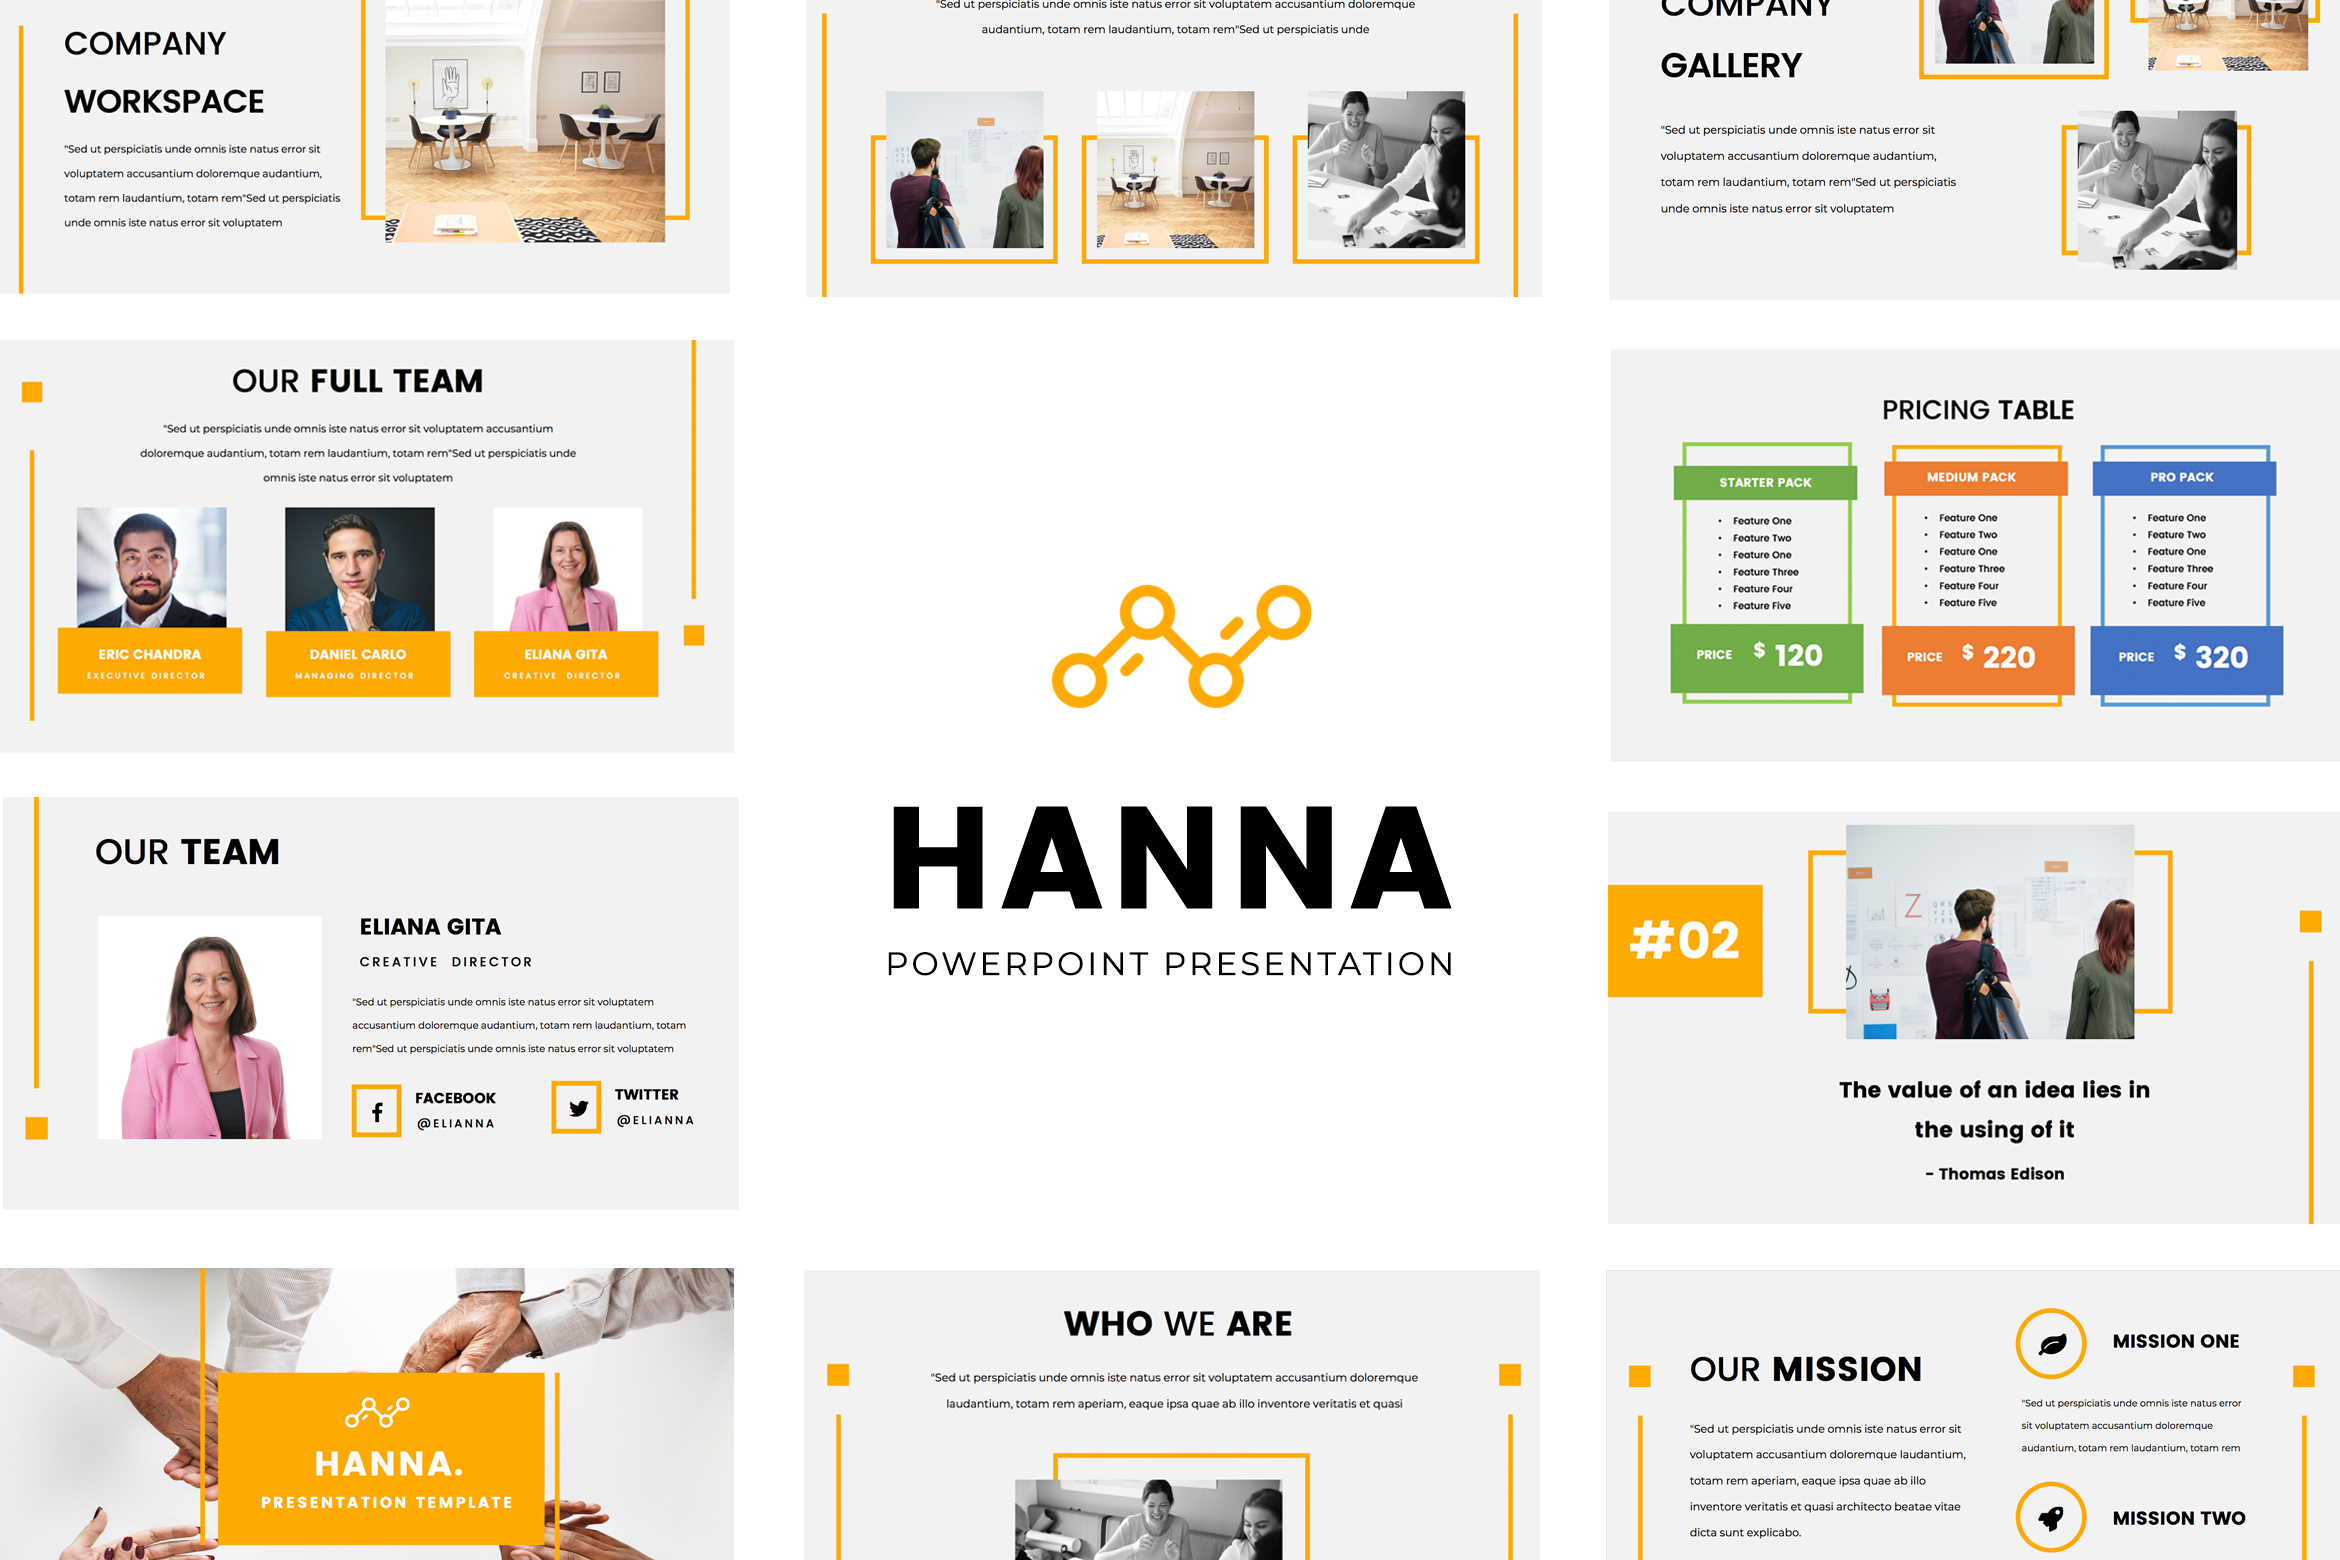 Download Free Hanna Powerpoint Presentation Graphic By Tmint Creative Fabrica for Cricut Explore, Silhouette and other cutting machines.